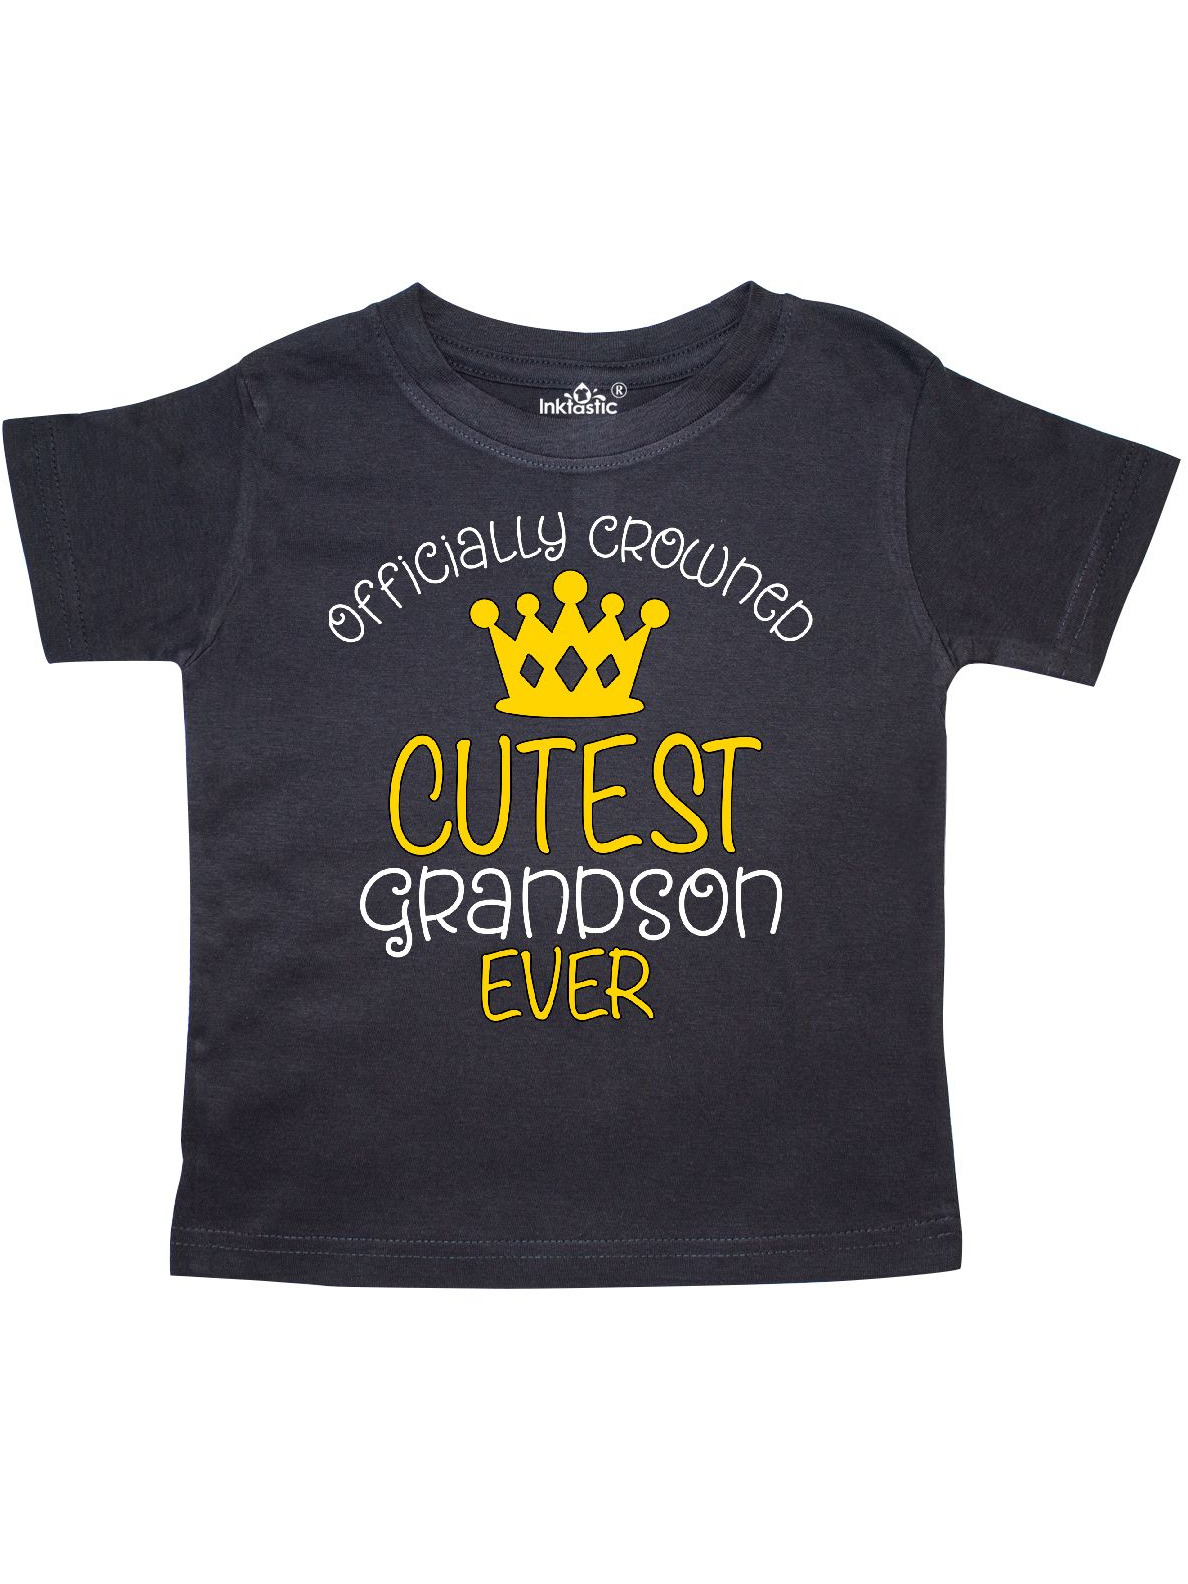 Officially Crowned Cutest Grandson Ever gold crown Toddler T-Shirt